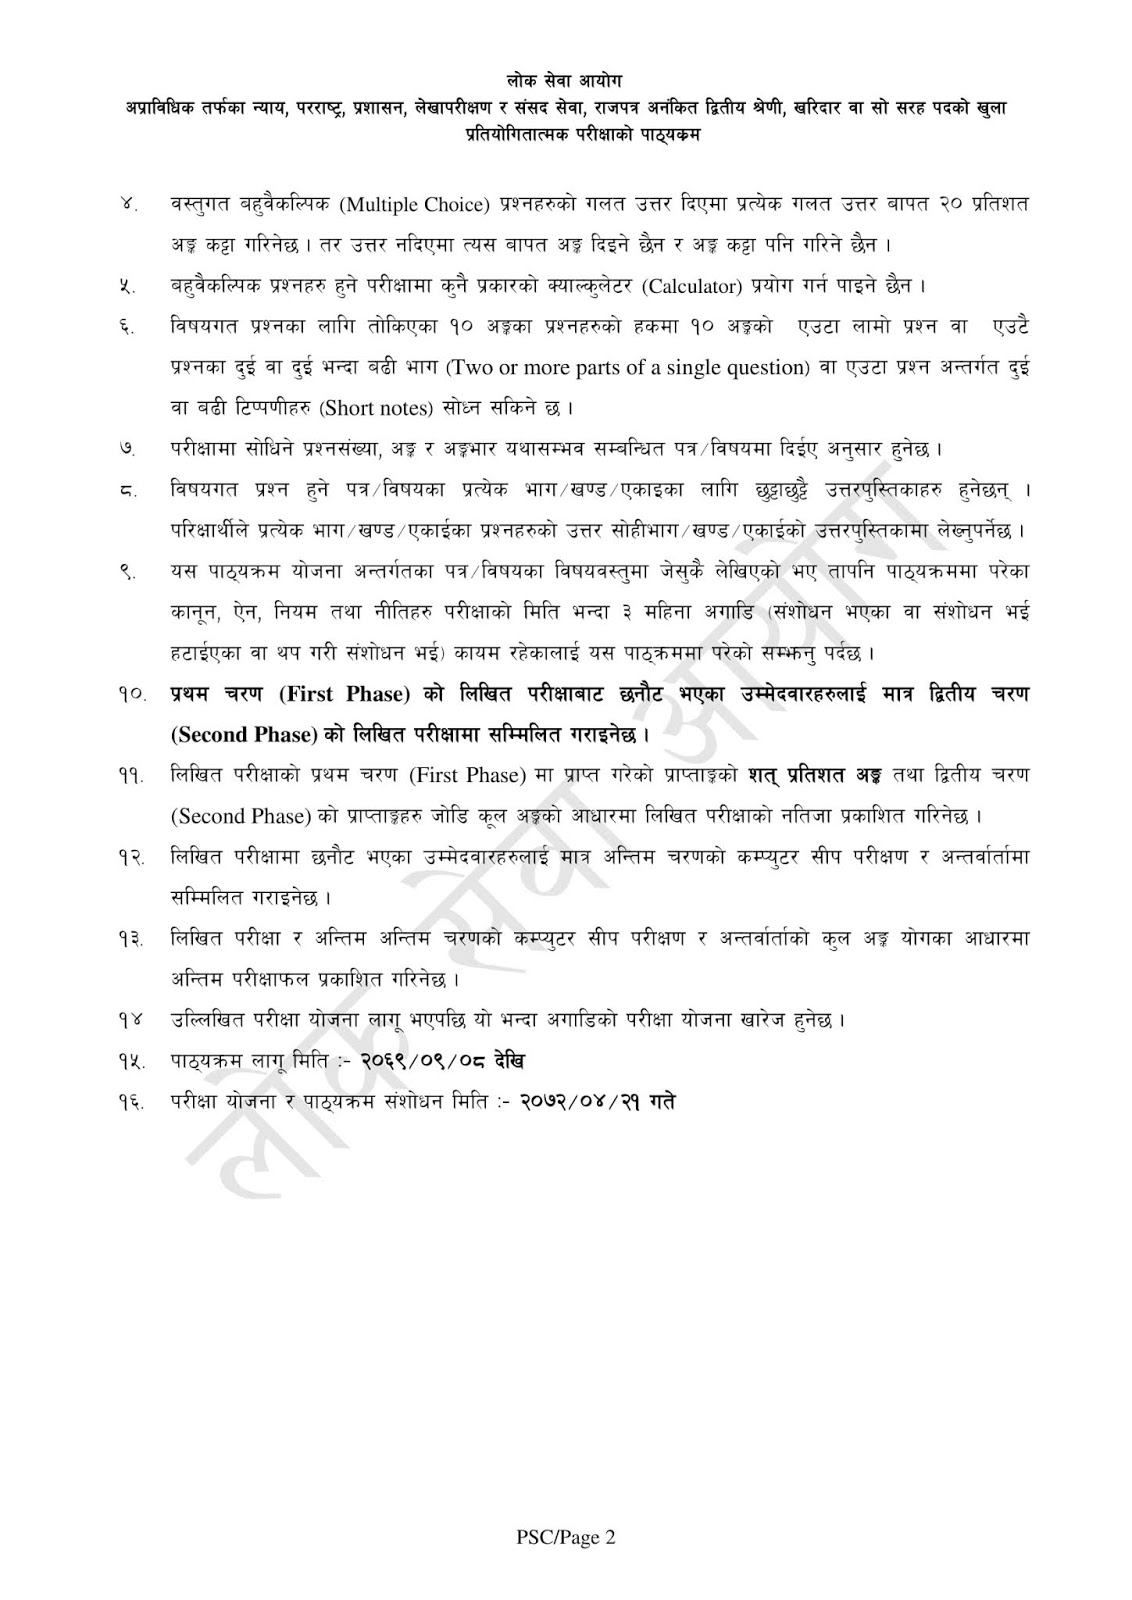 Kharidar All Paper Syllabus And Some Model Questions